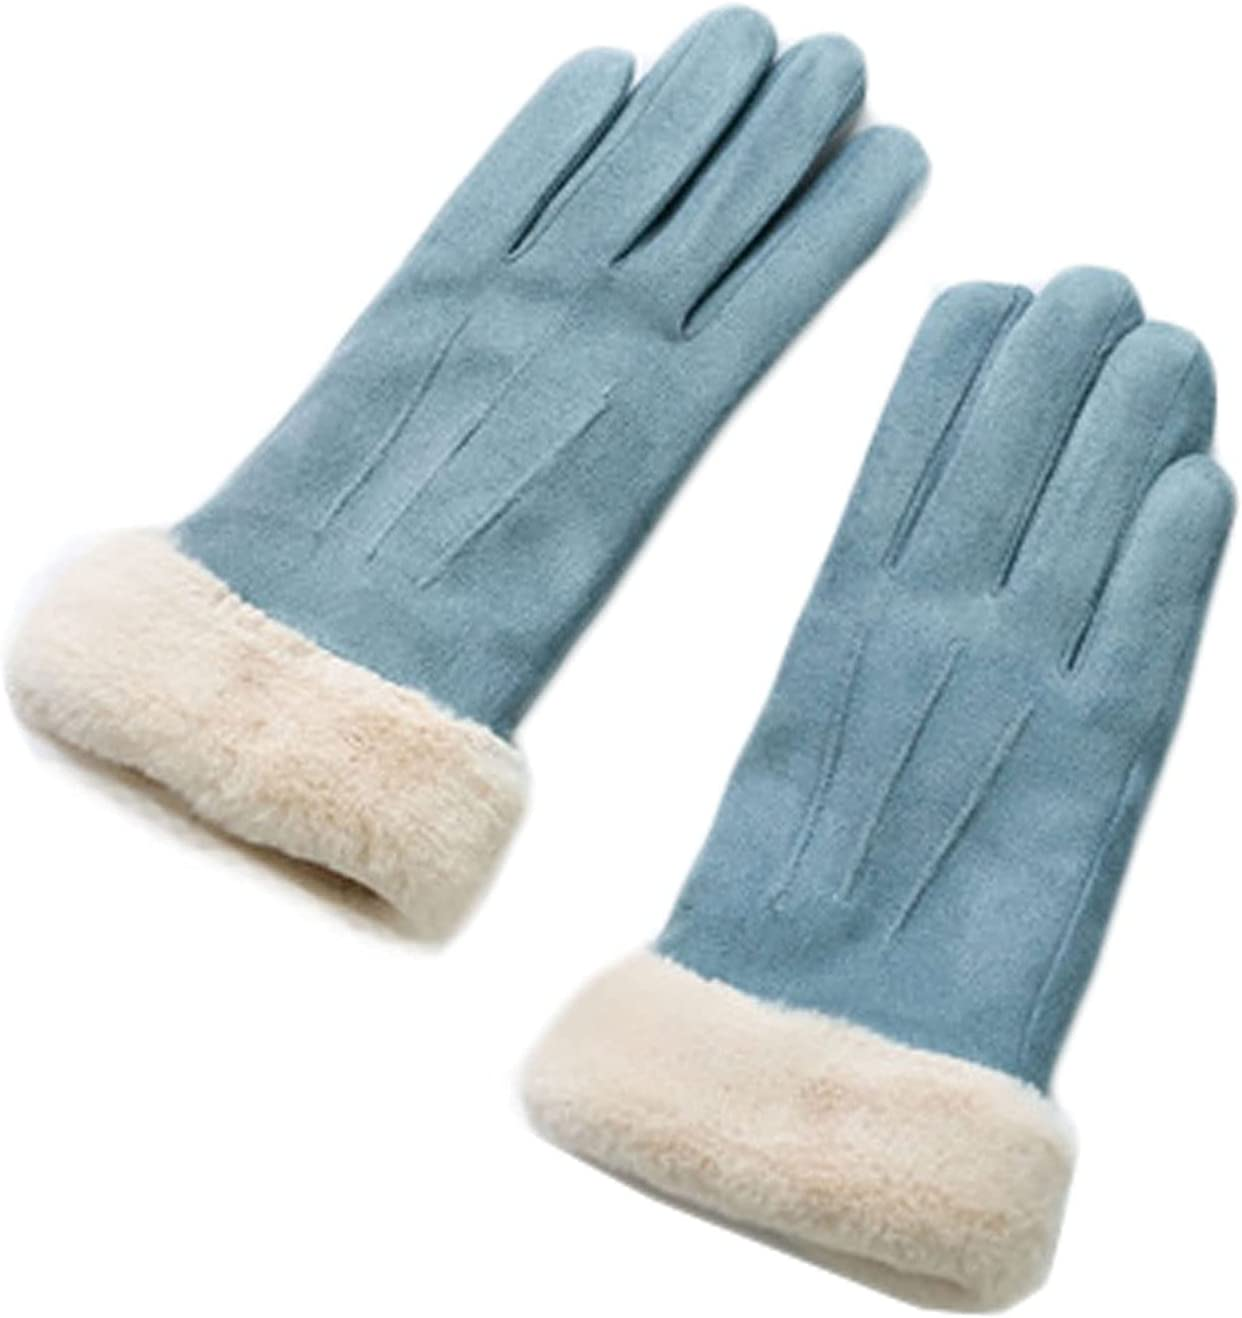 FAYDOO Lace Gloves Cold Protection Warm Gloves Women Winter Suede Autumn and Winter Touch Screen Cute Plus Velvet Thickening Sun Protection Gloves (Color : Blue)